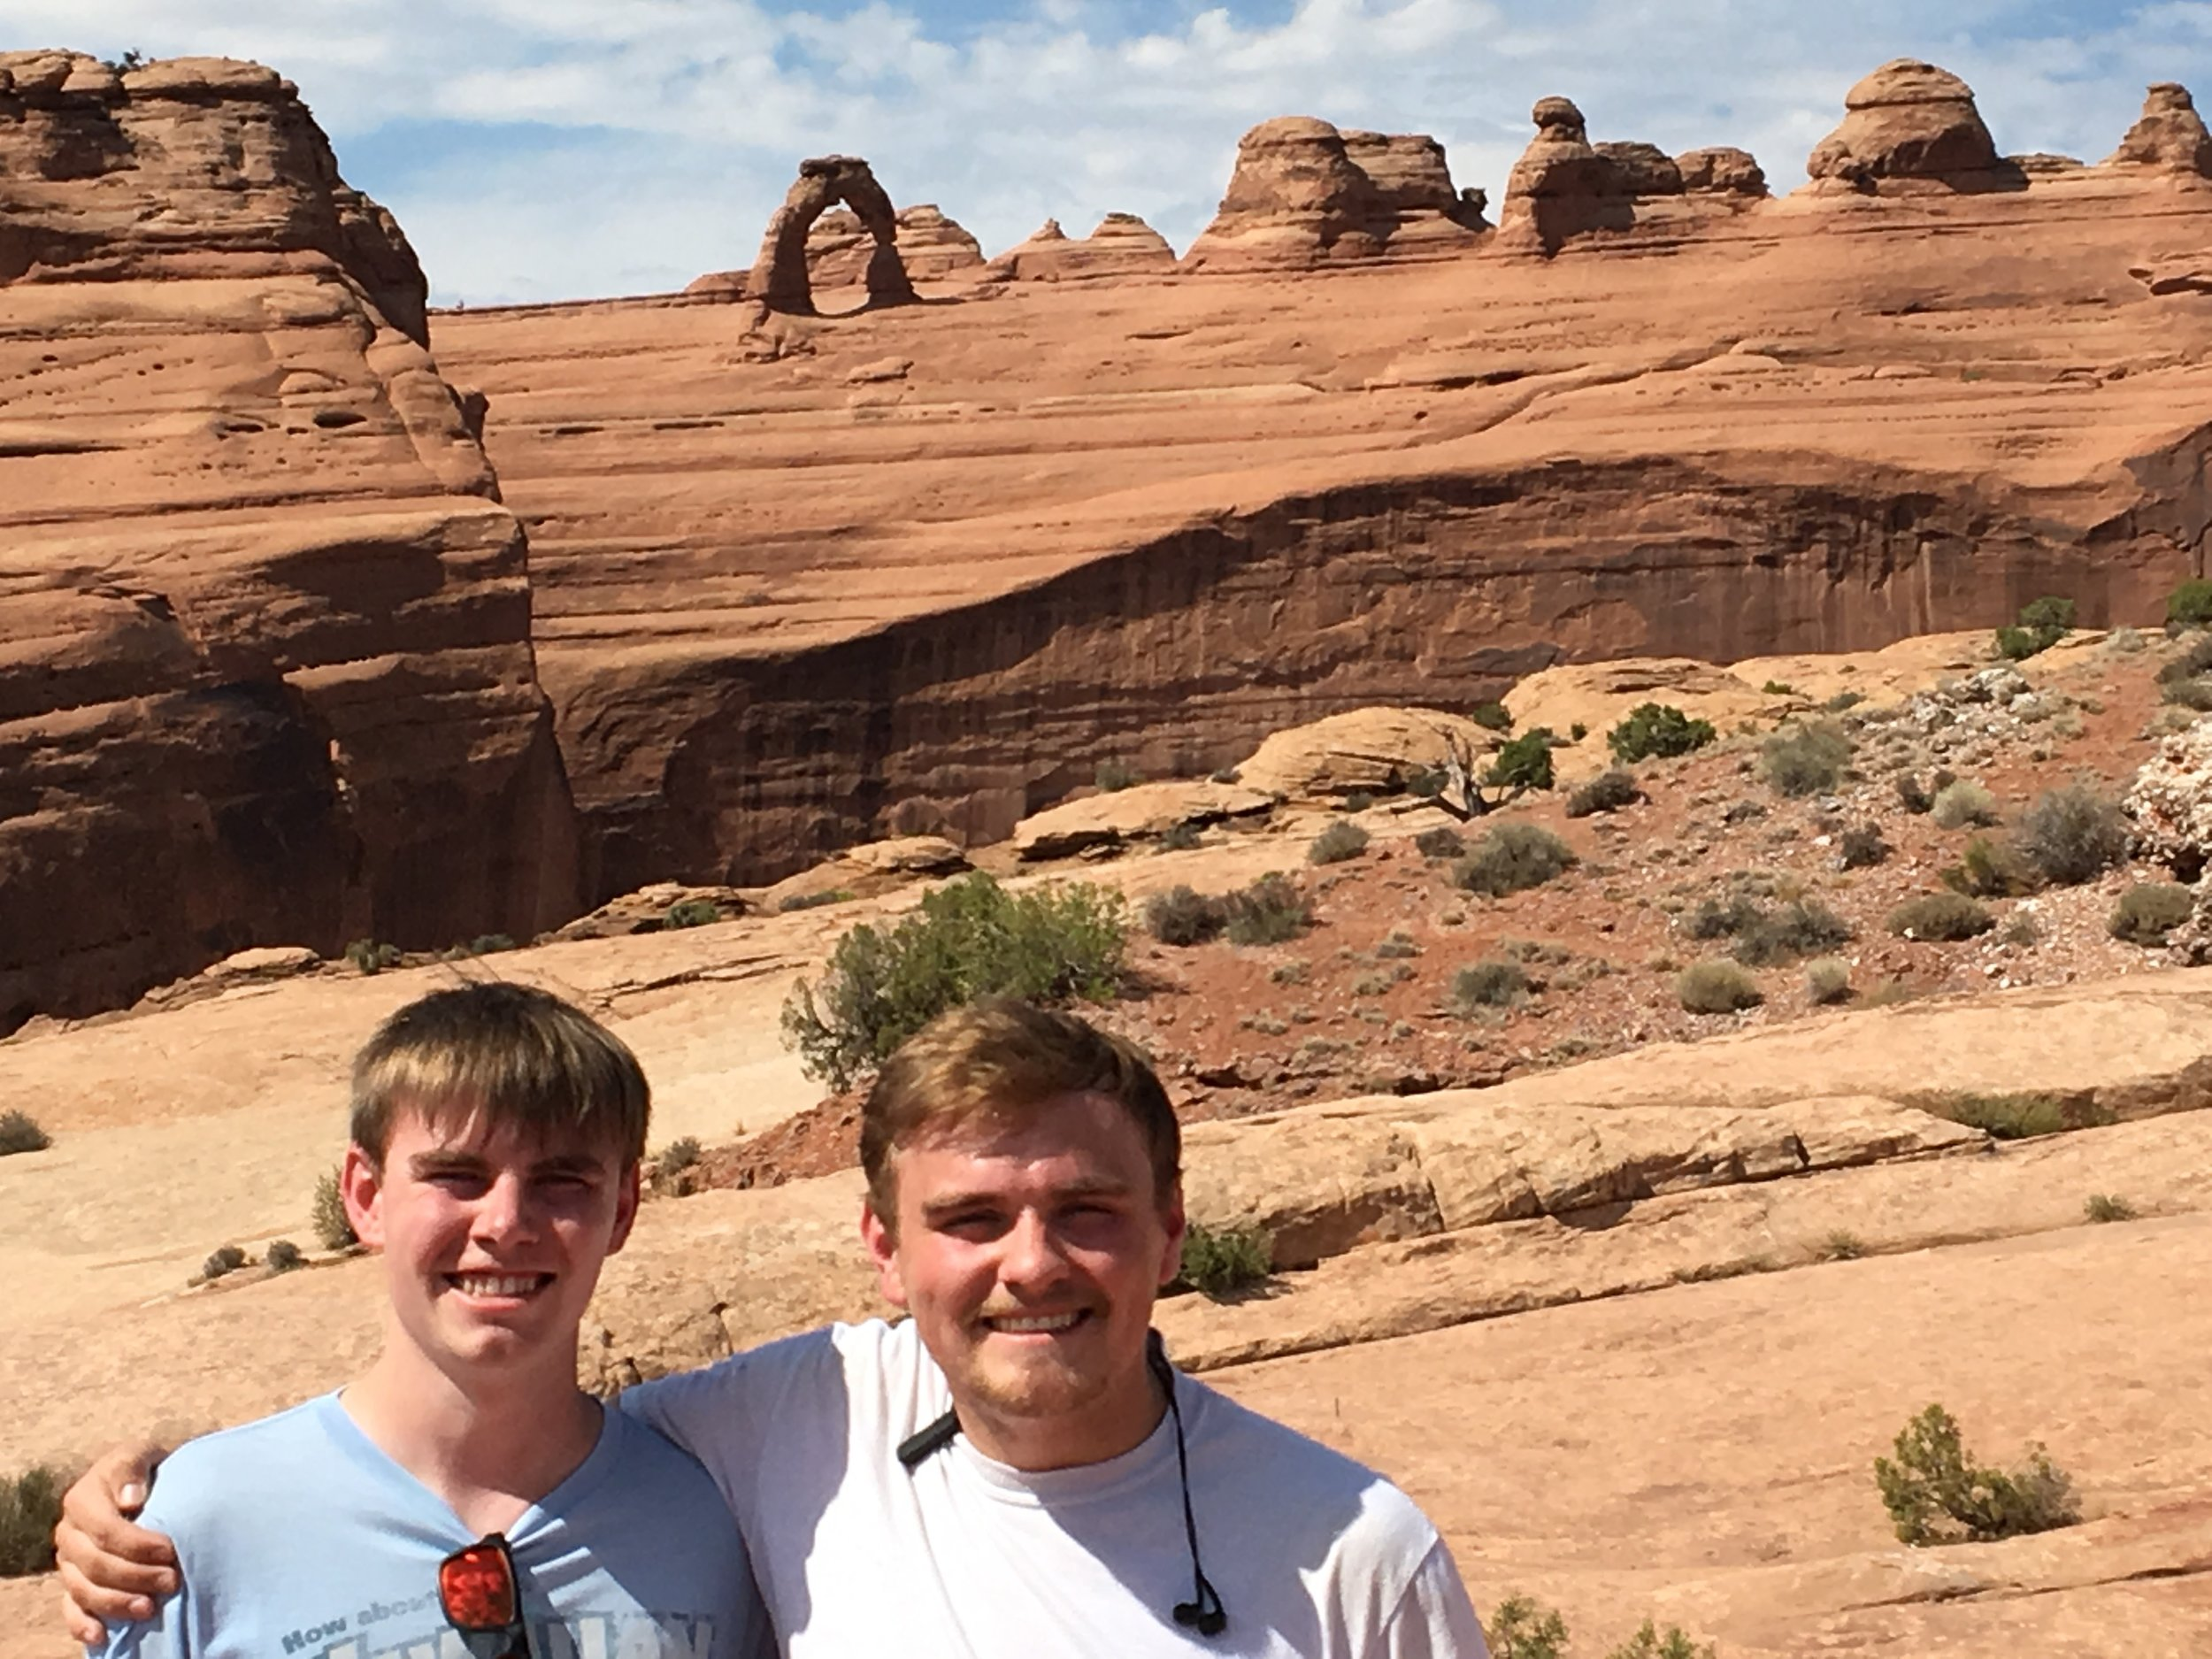 My brother (left) and me (right) at Arches National Park